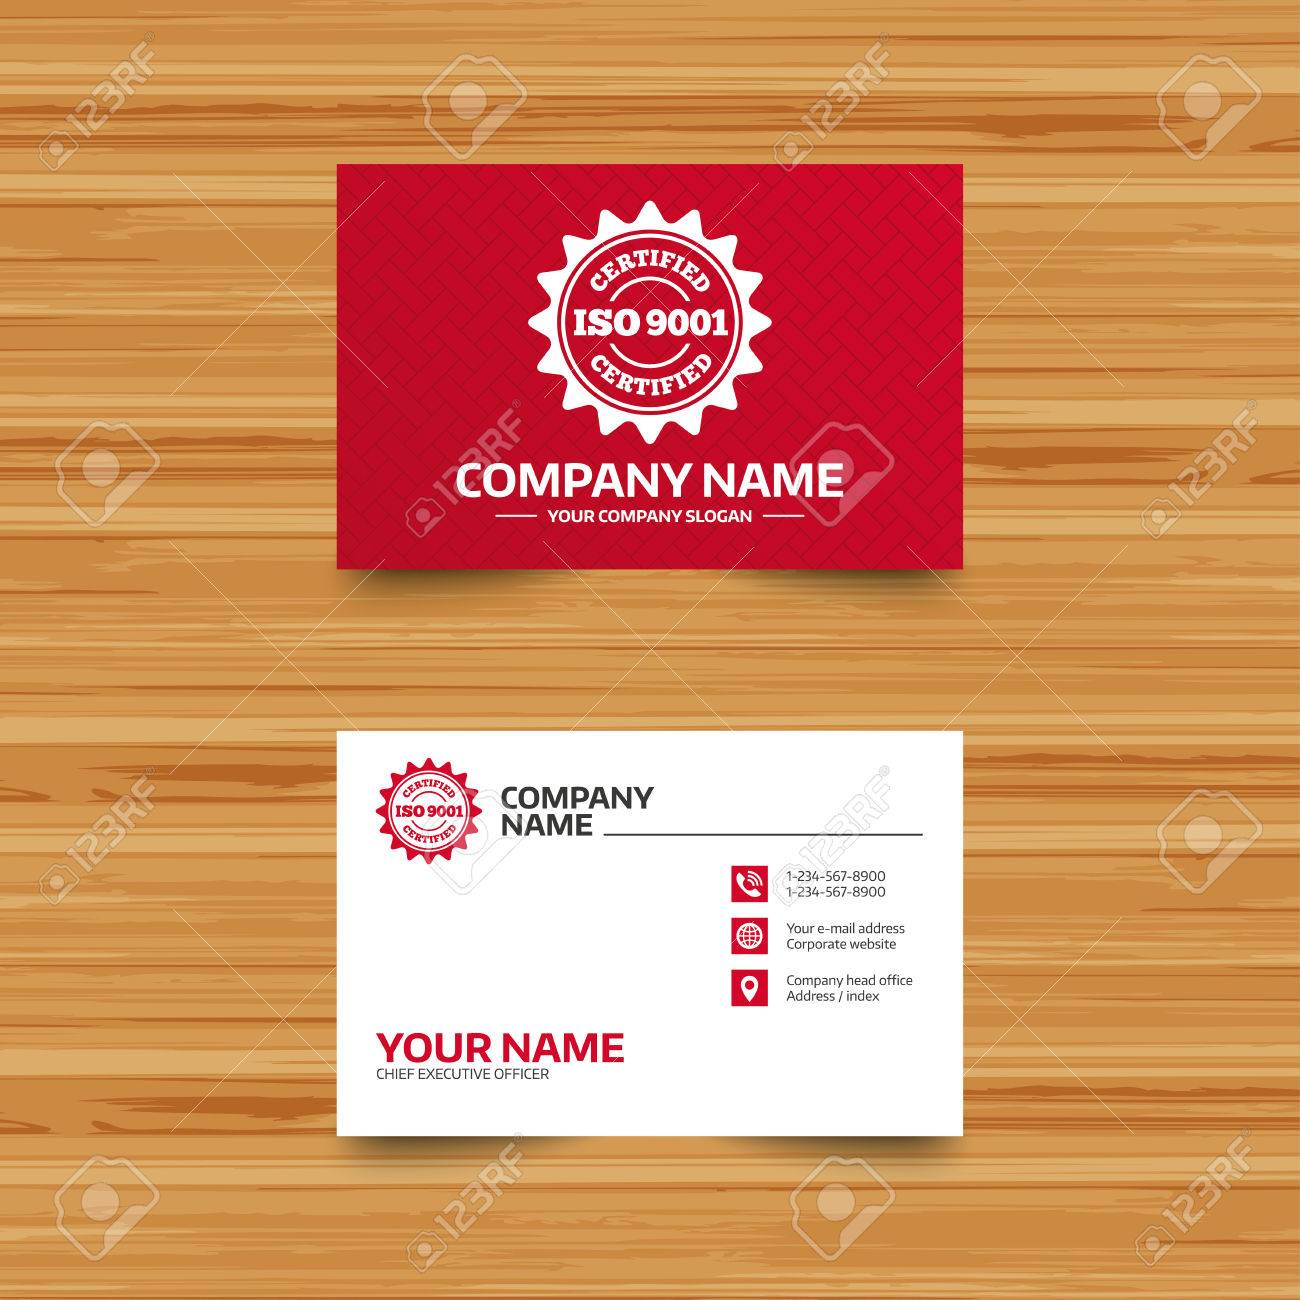 Business Card Etiquette Certifications Gallery - Card Design And ...